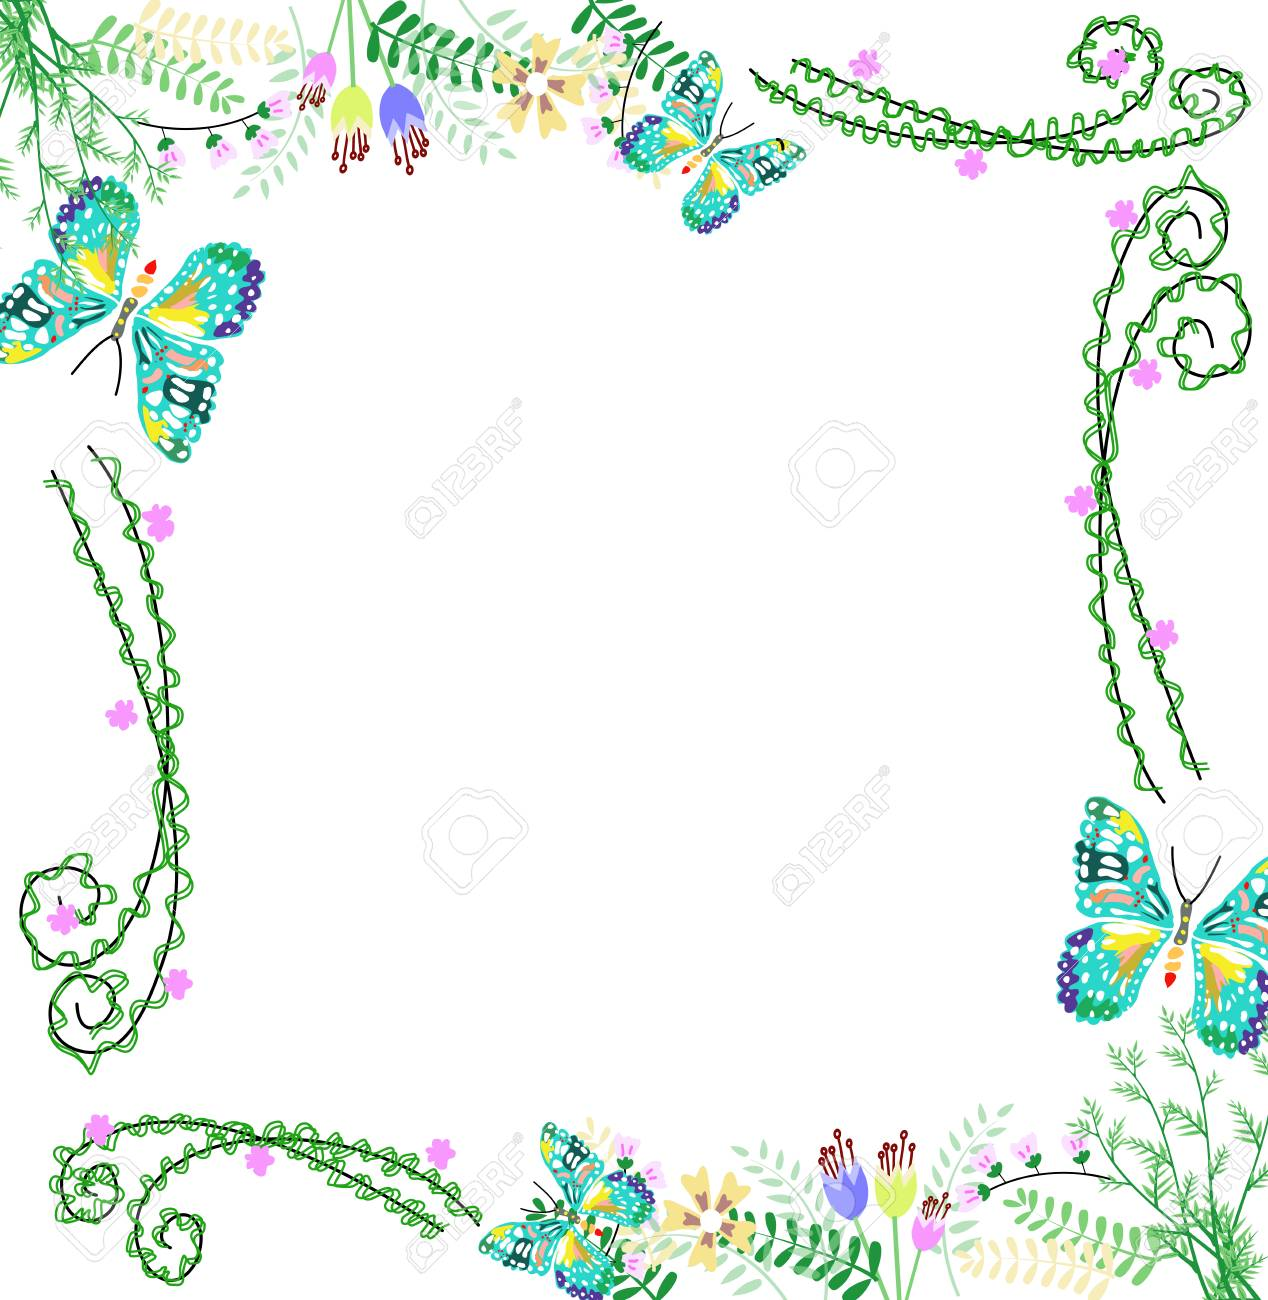 Nature Colorful Flower And Butterfly Frame Background,graphic Stock ...